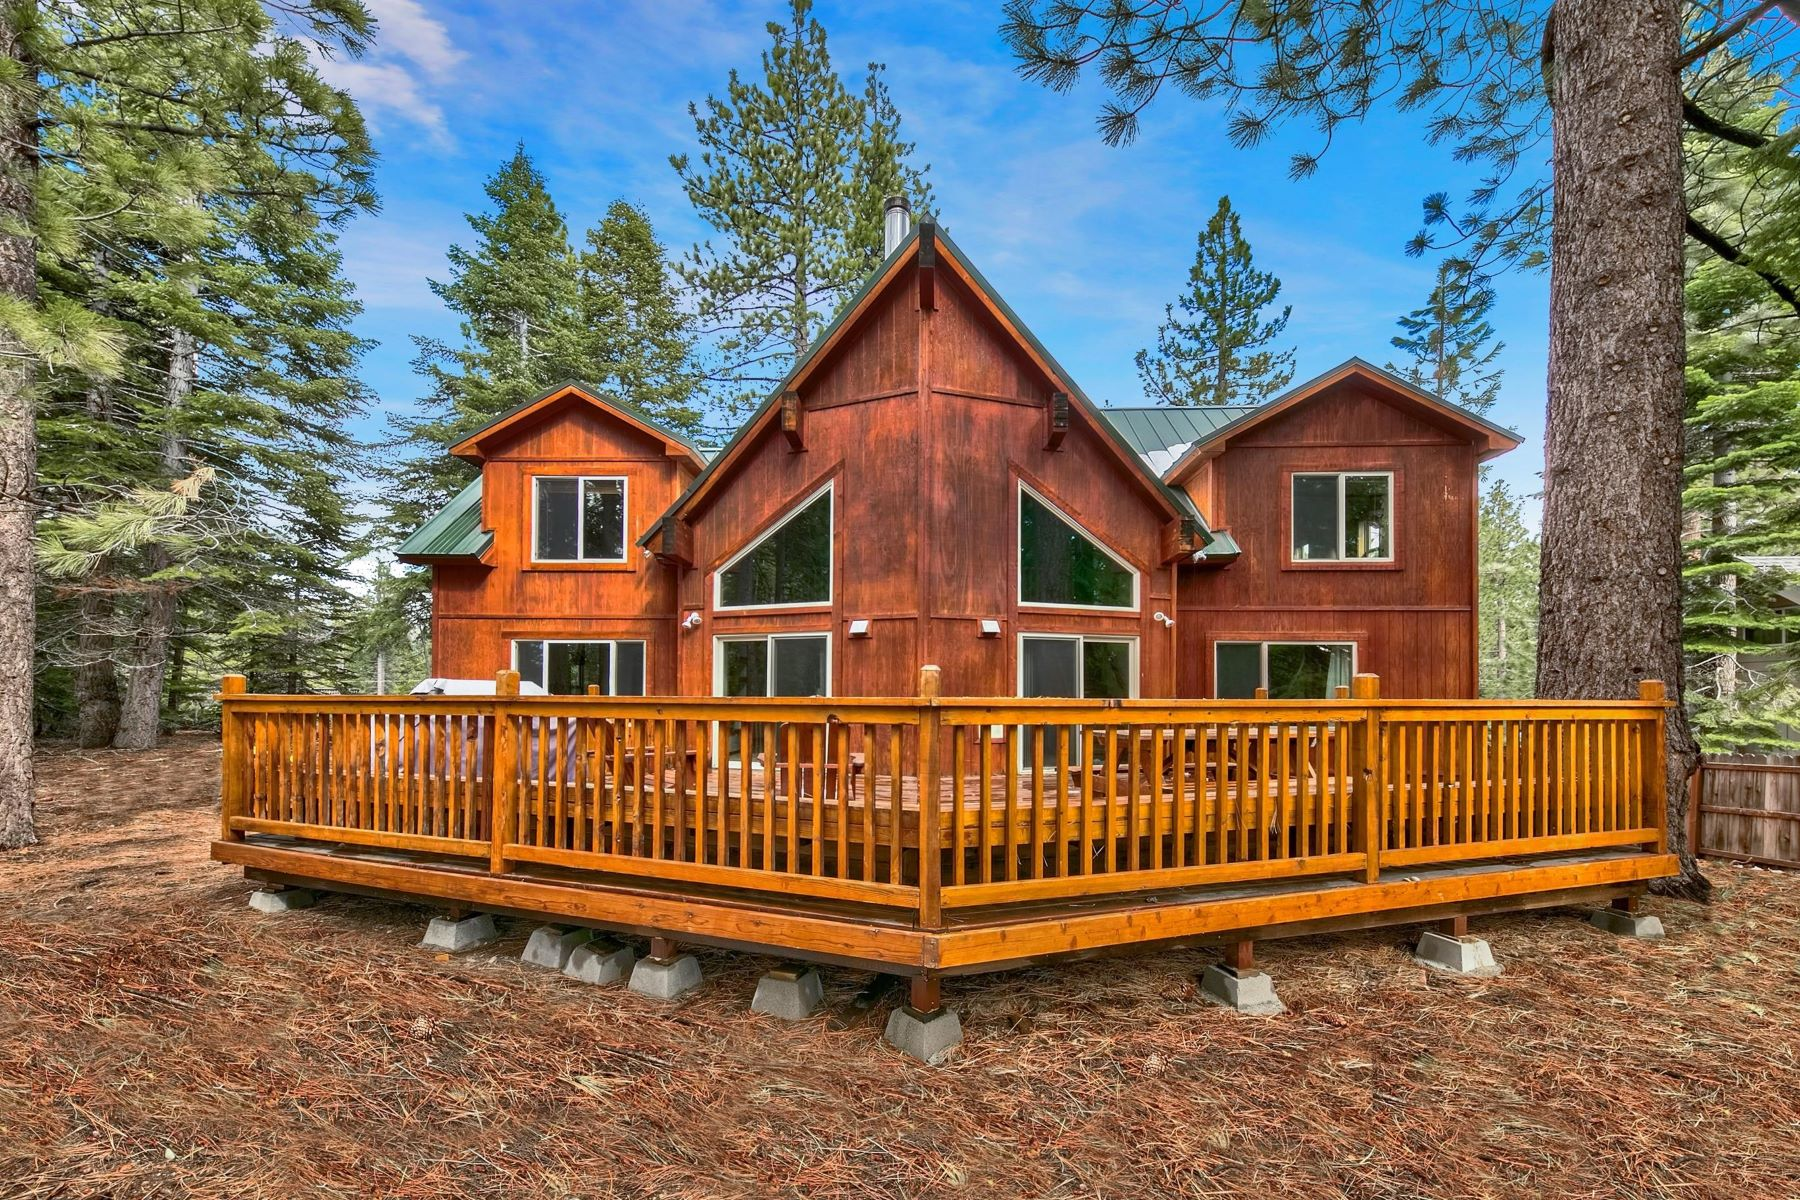 Single Family Homes for Active at 1468 Crystal Air Dr, South Lake Tahoe, CA 96150 1468 Crystal Air Dr South Lake Tahoe, California 96150 United States